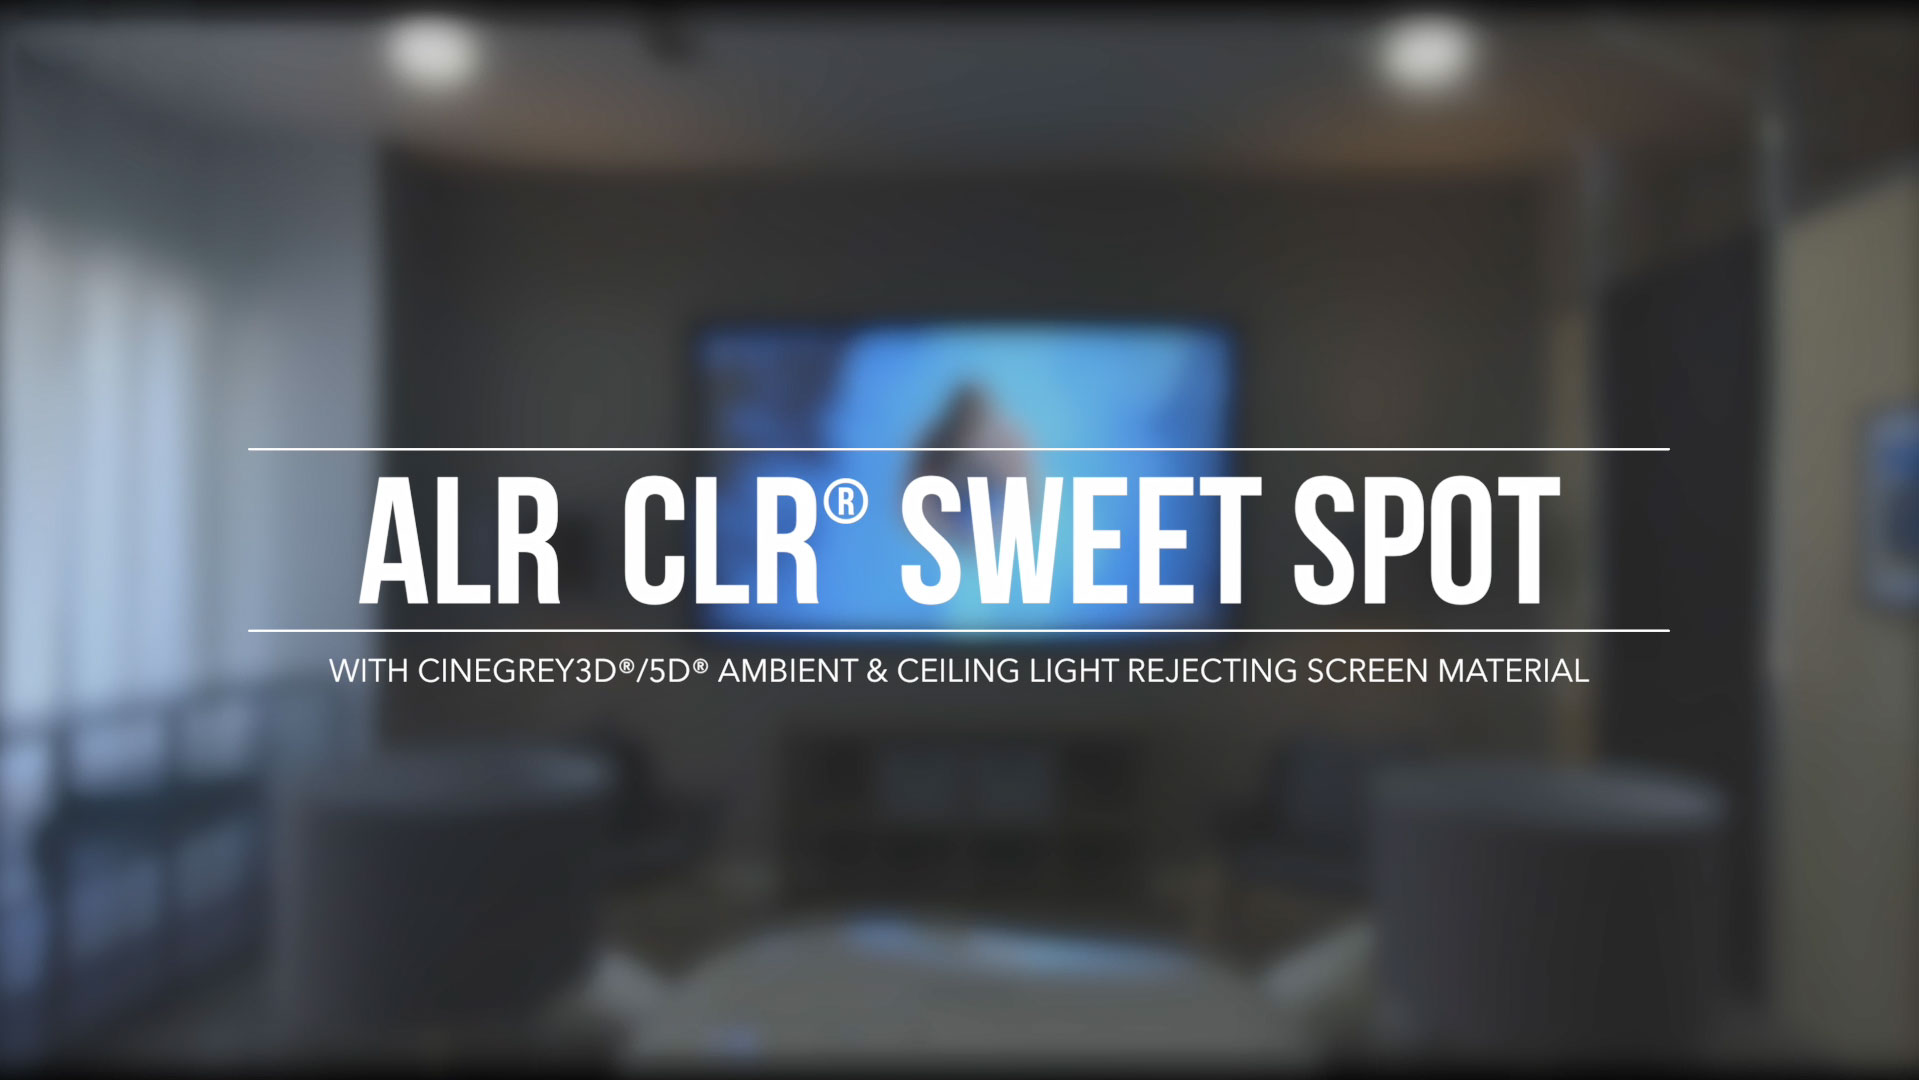 CineGrey 3D/5D® Ambient & Ceiling Light Rejecting Projector Screen Sweet Spot Video